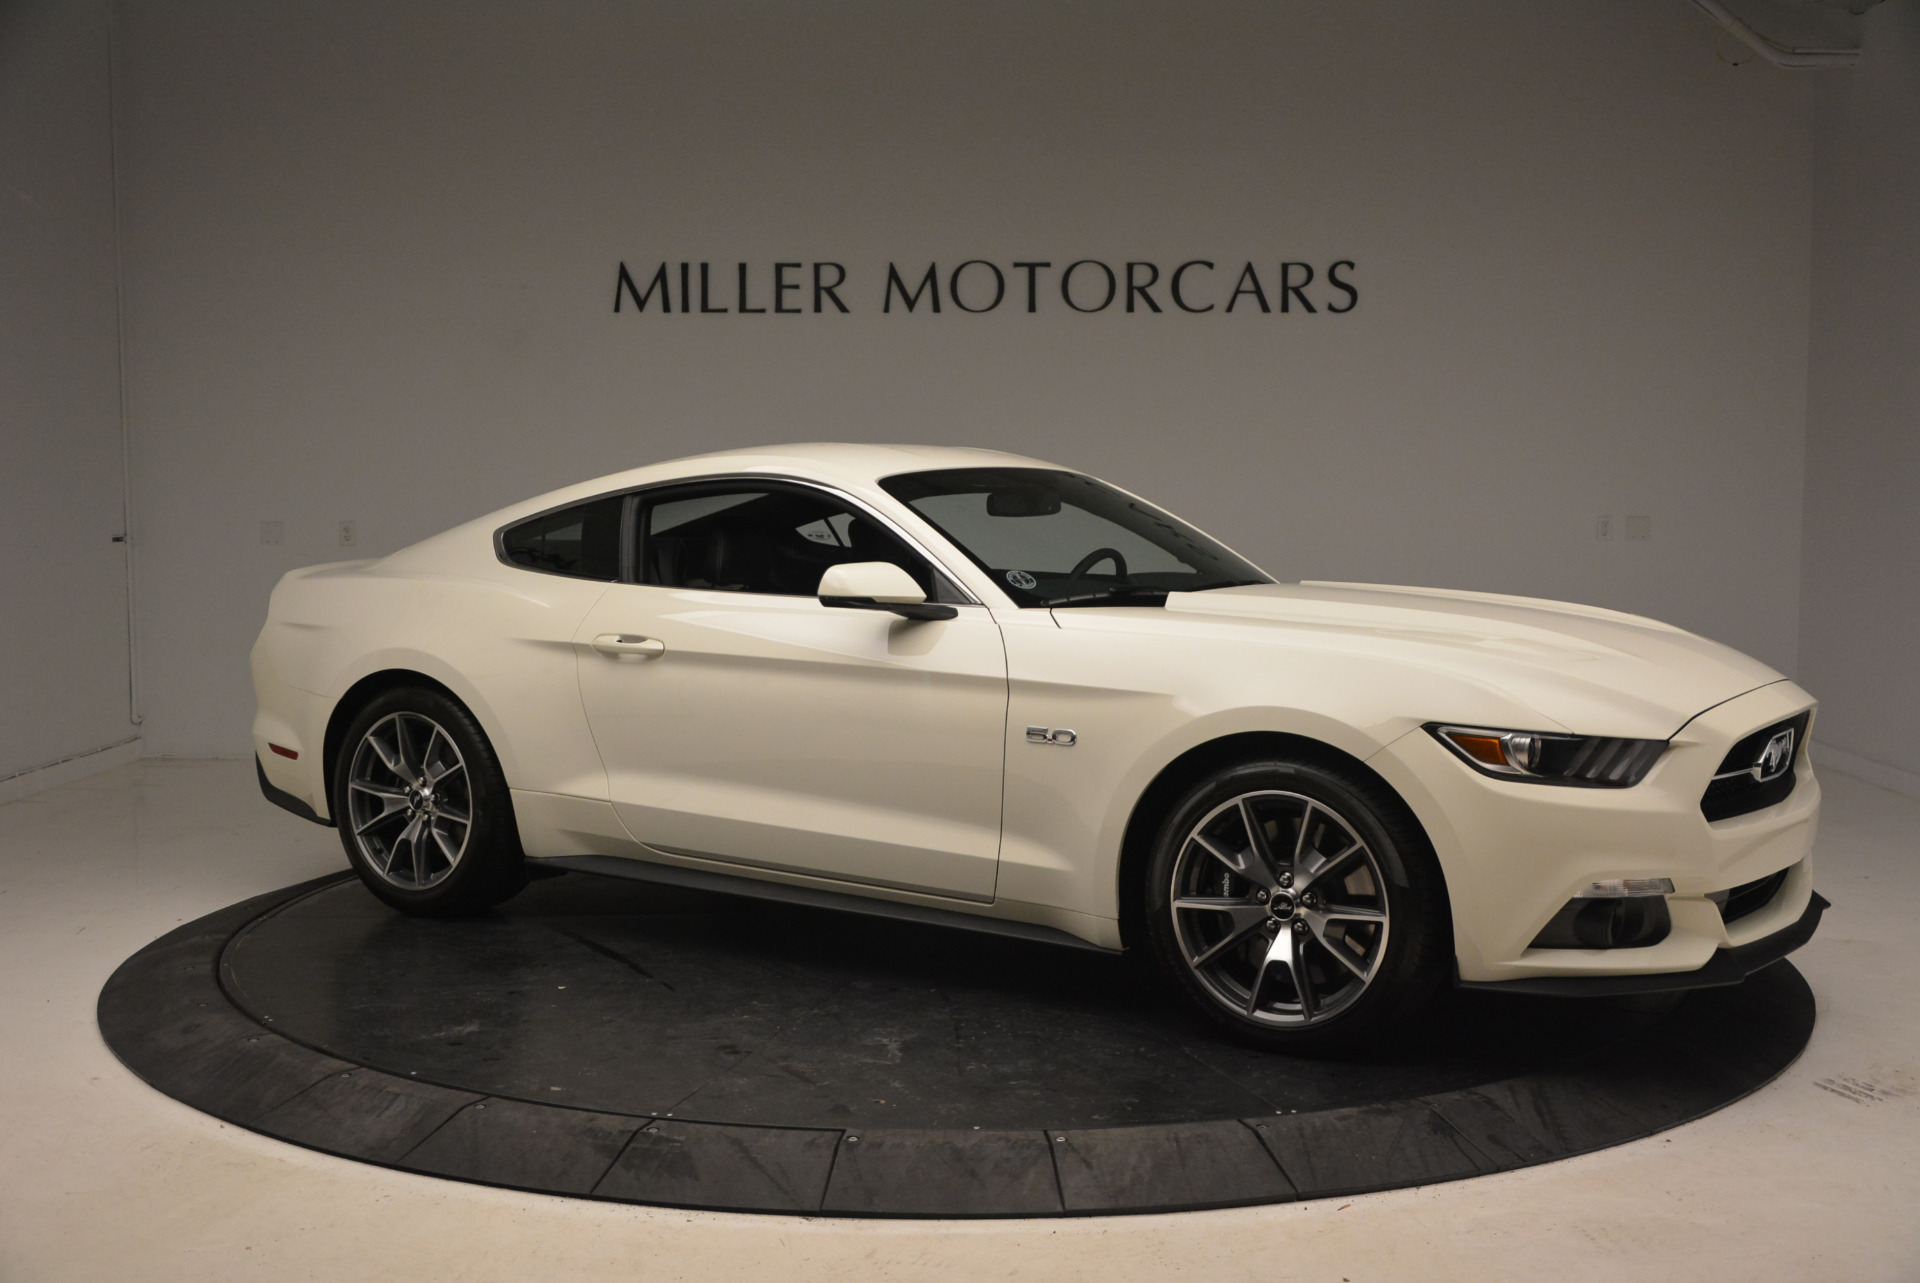 Used 2015 Ford Mustang GT 50 Years Limited Edition For Sale In Greenwich, CT 1793_p10